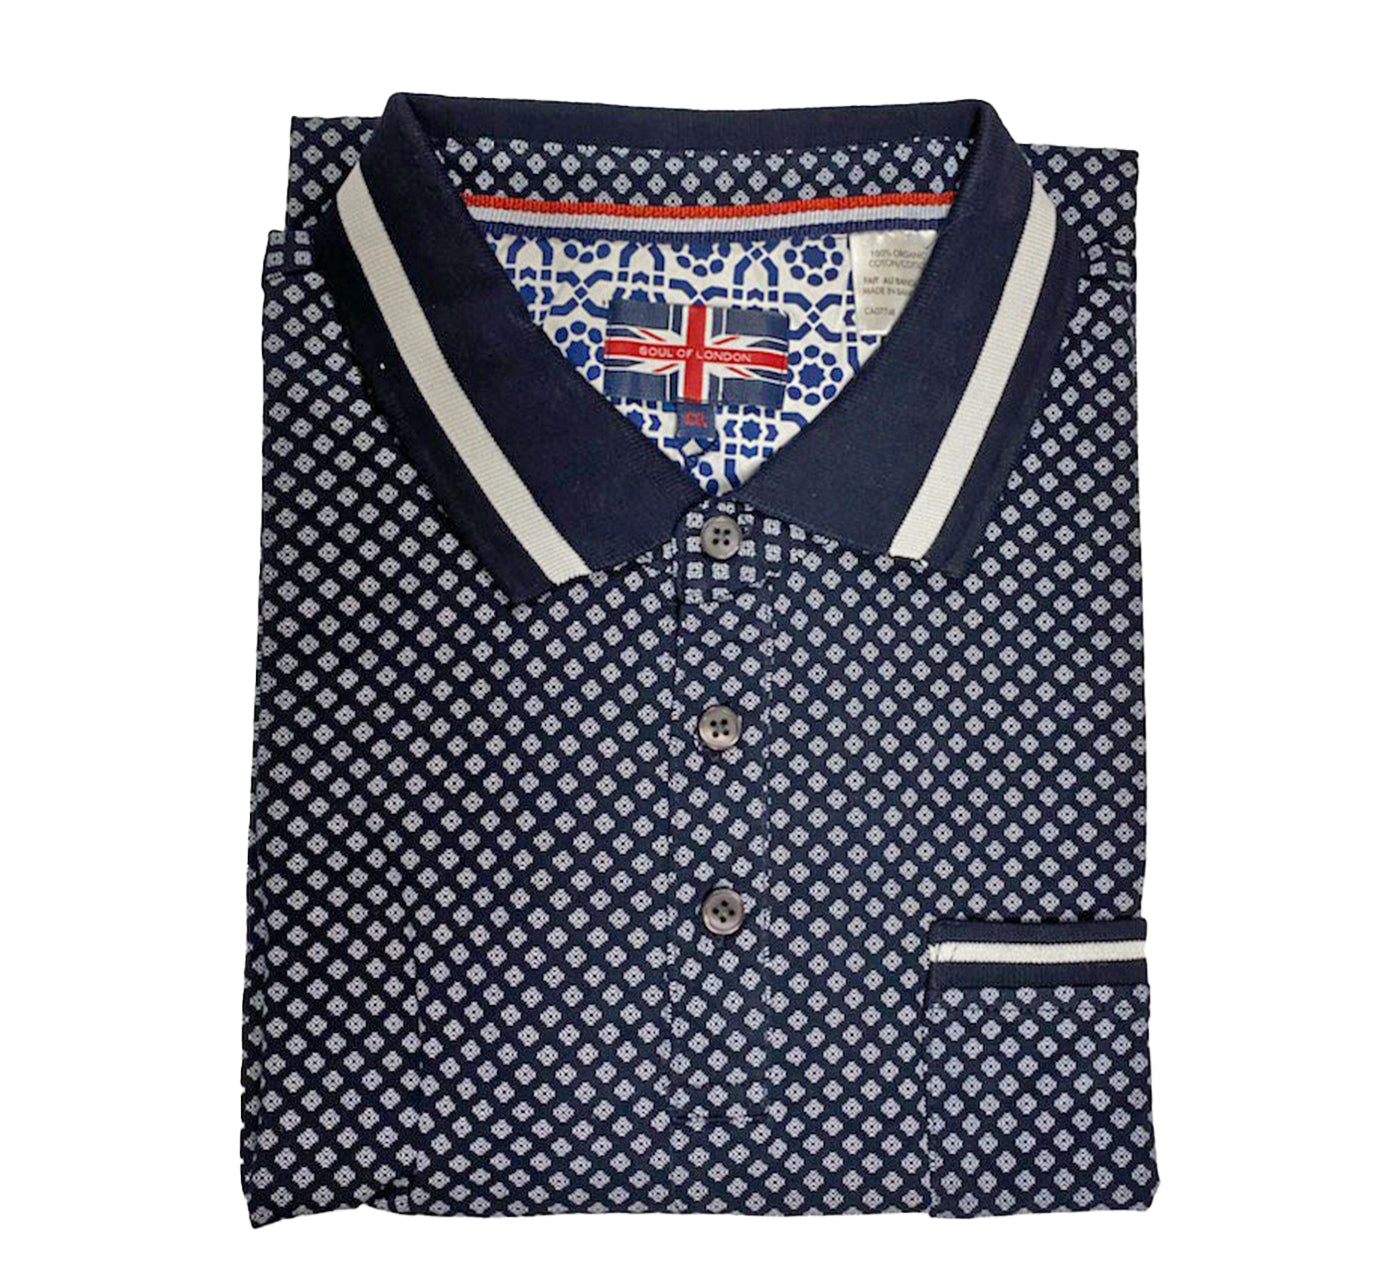 Soul of London Polo